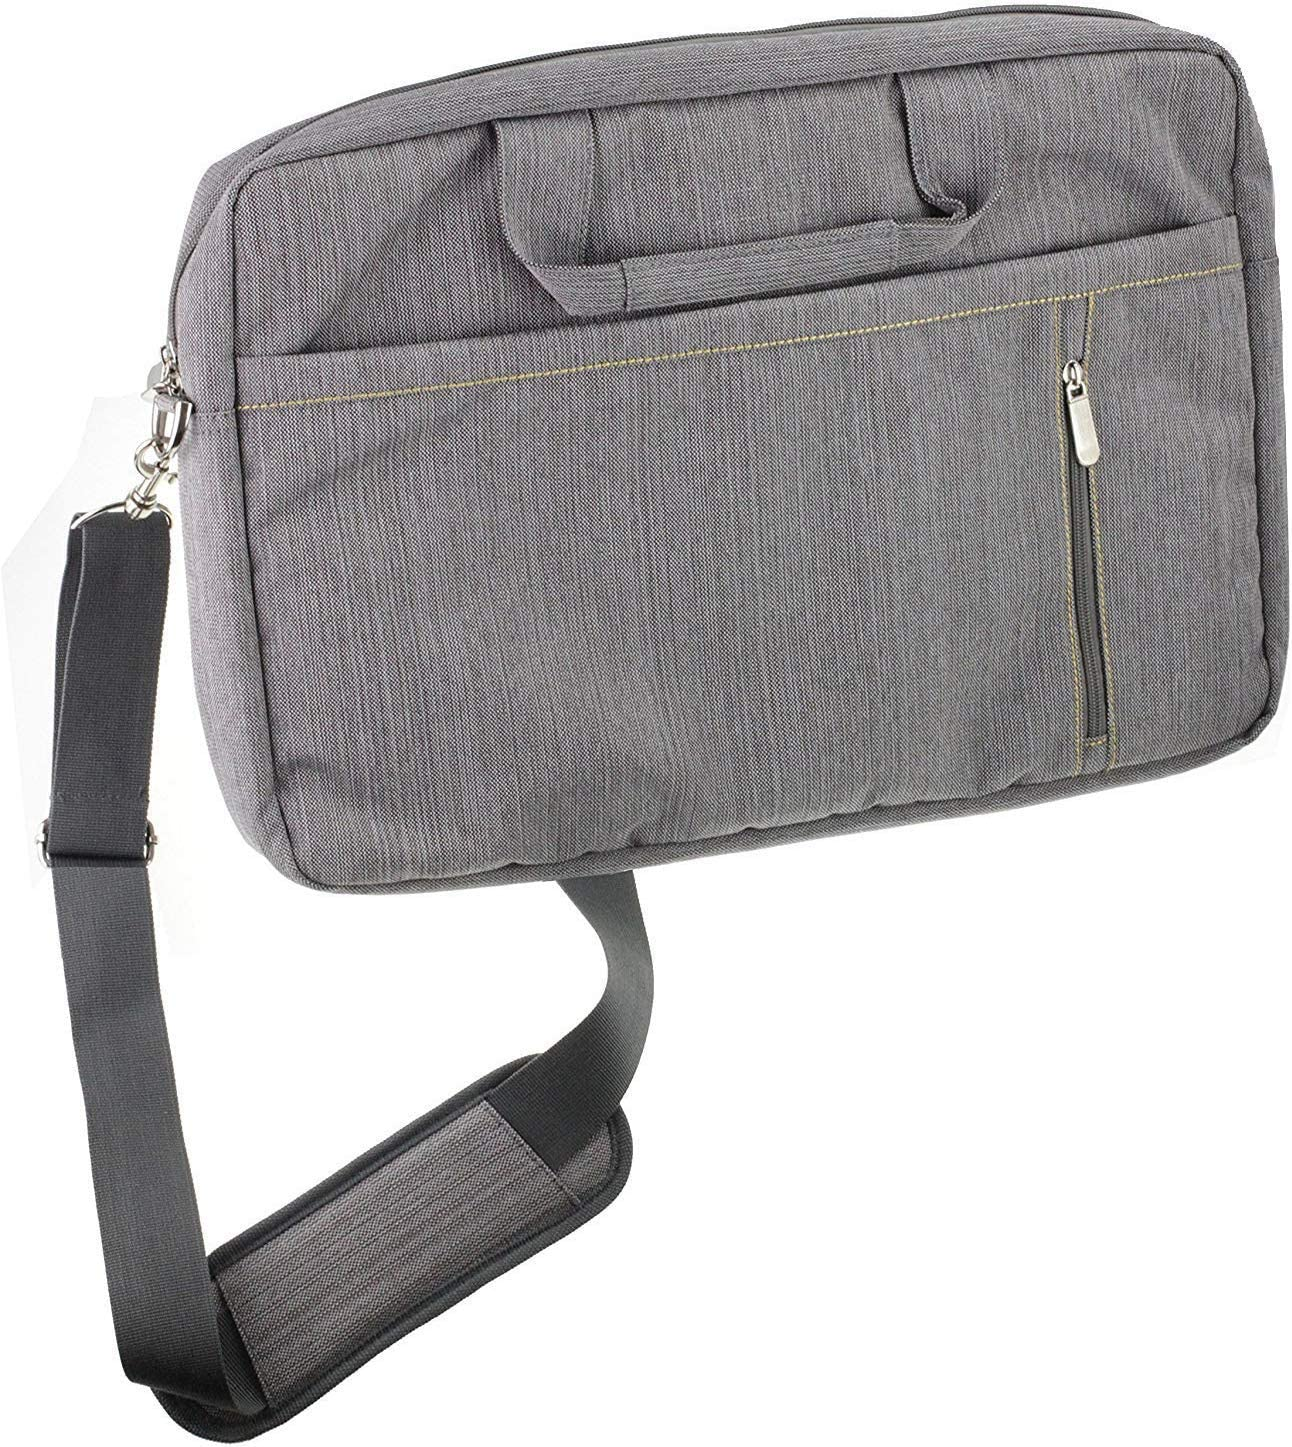 Navitech Grey Premium Messenger/Carry Bag Compatible with The Acer Aspire 3 A315-33-P4ED 15.6